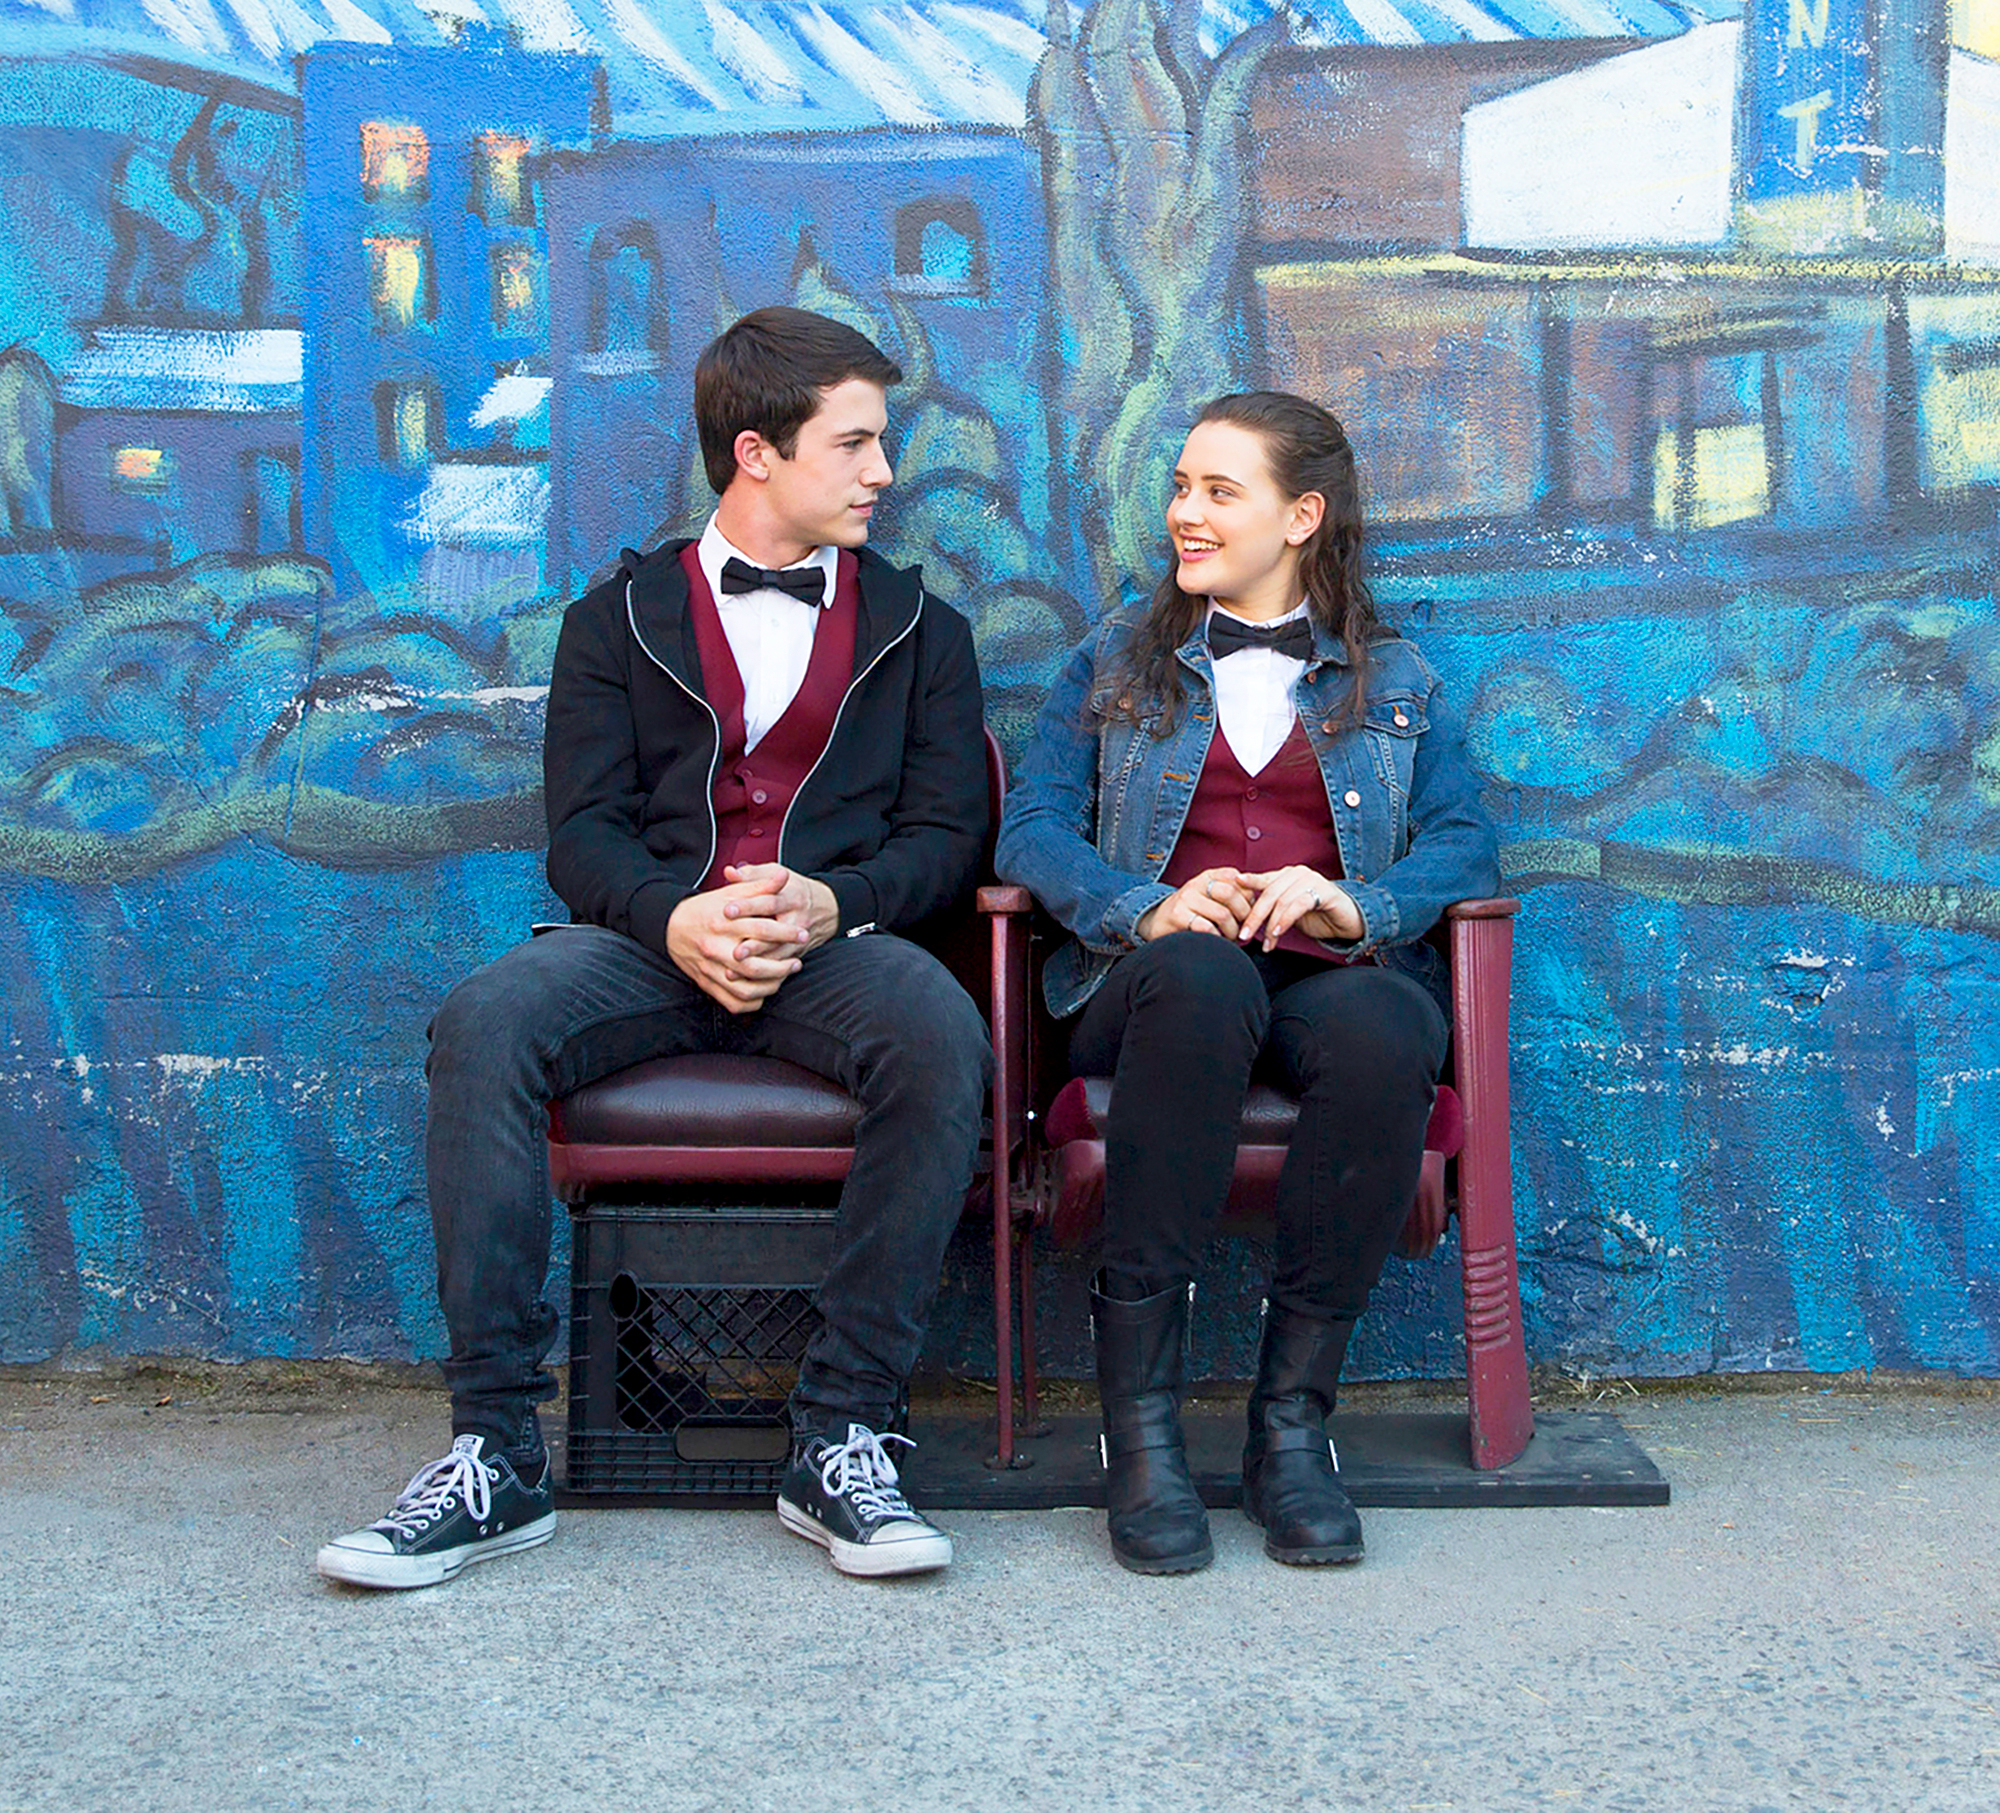 Dylan Minnette and Katherine Langford 13 Reasons Why